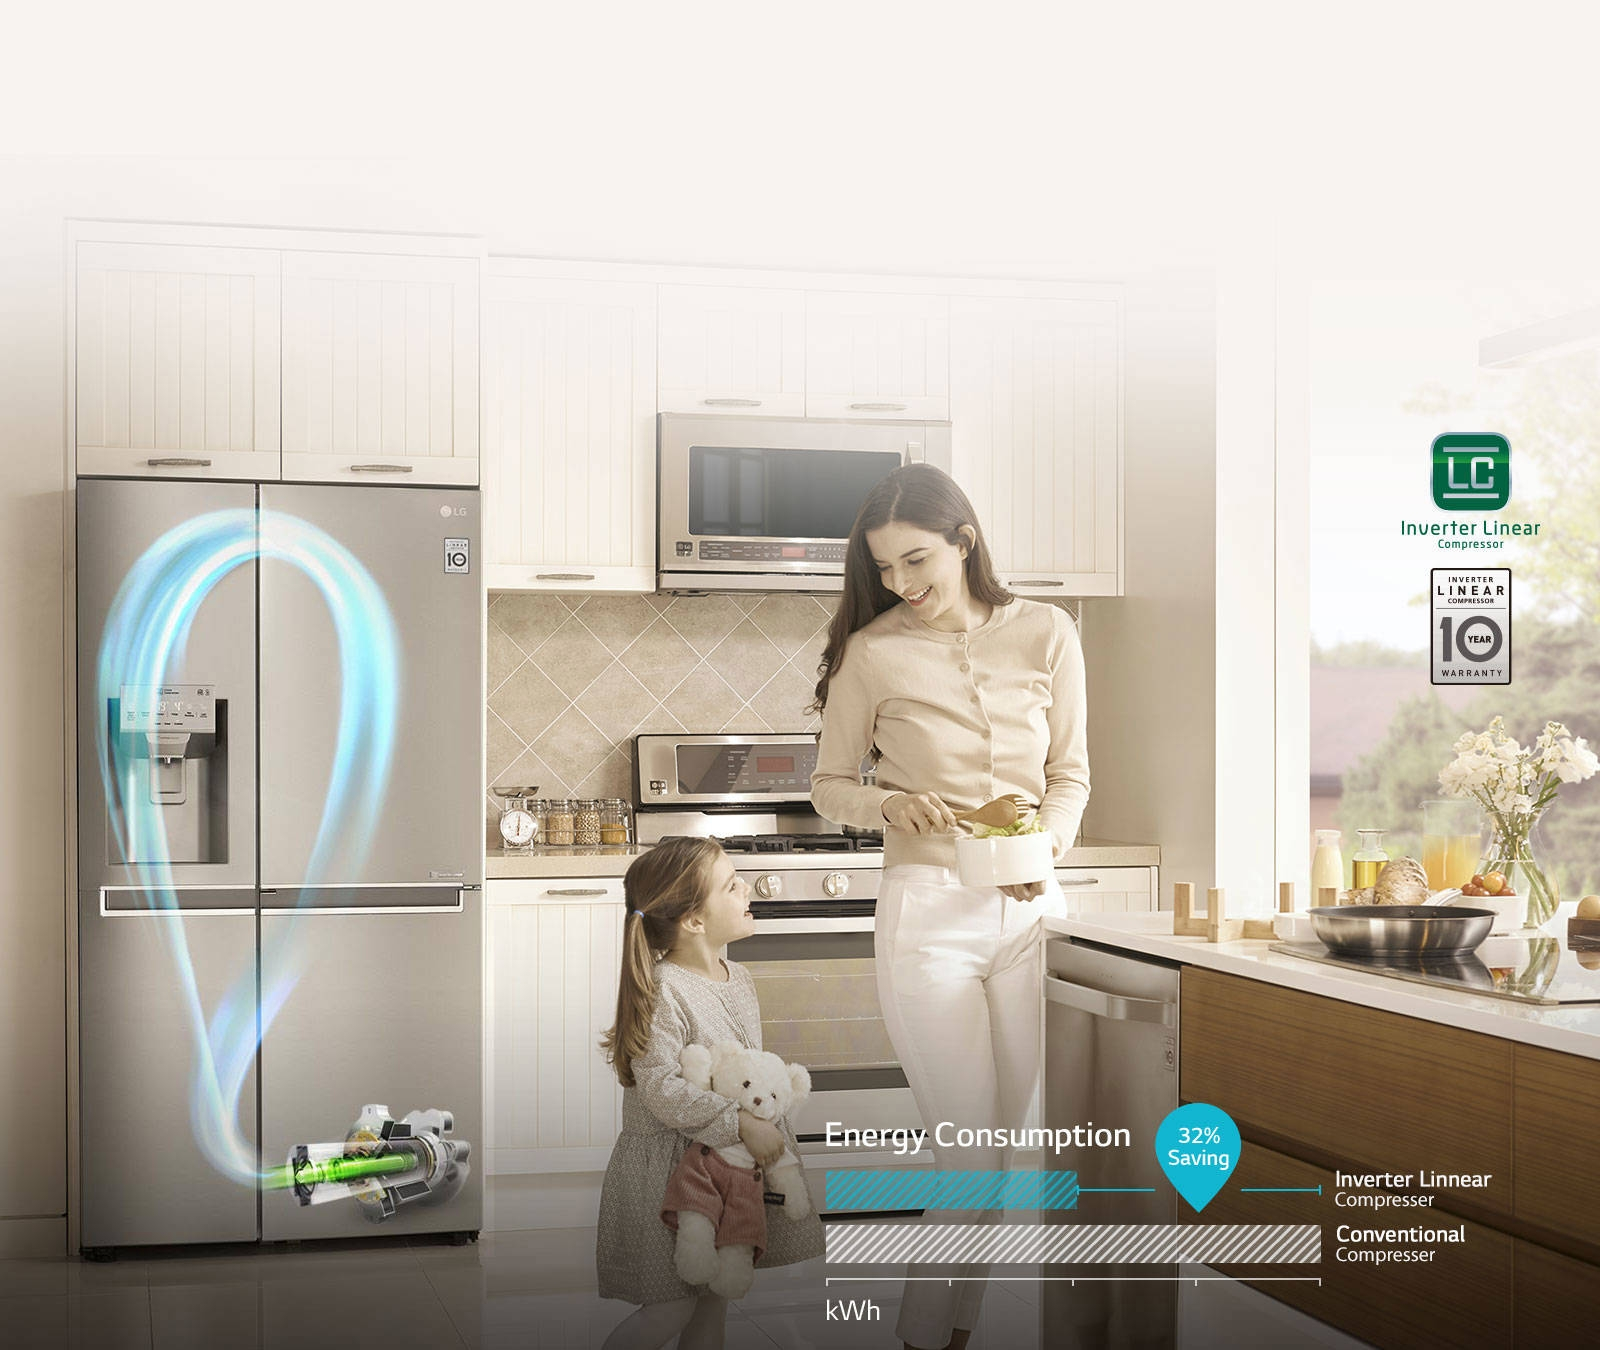 LG Fridges - Big Energy Savings with Inverter Linear Compressor